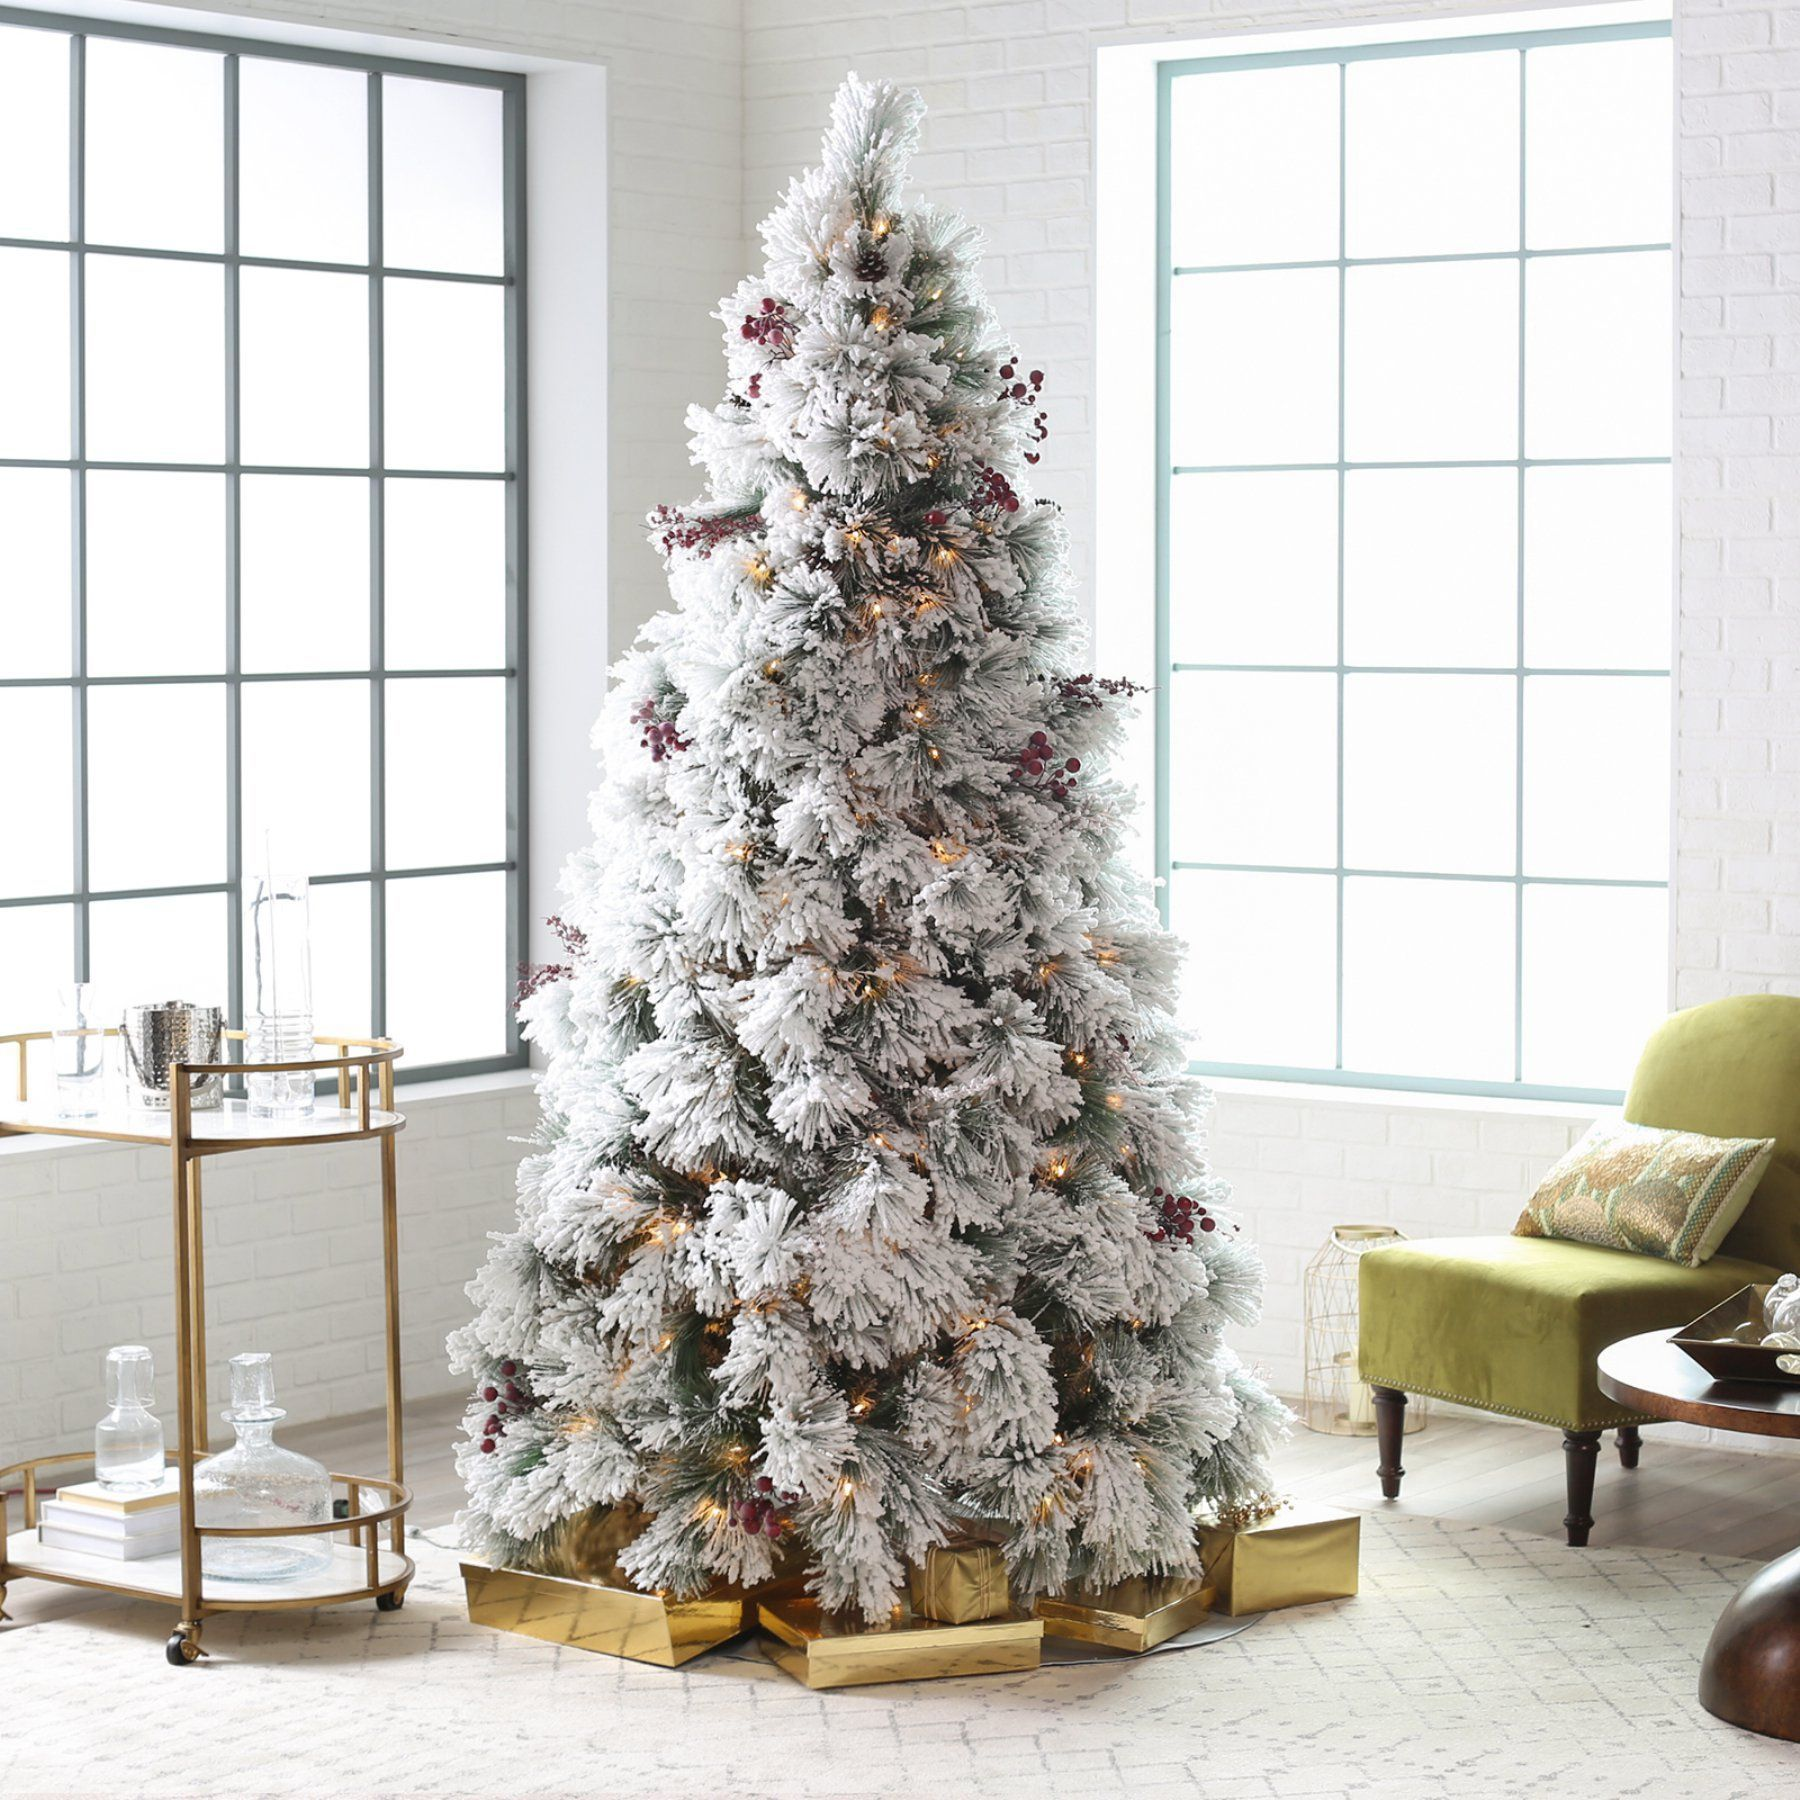 Christmas Tree With Pine Cones And Berries: Belham Living 7.5 Ft. Flocked Pine Needle Pre-Lit